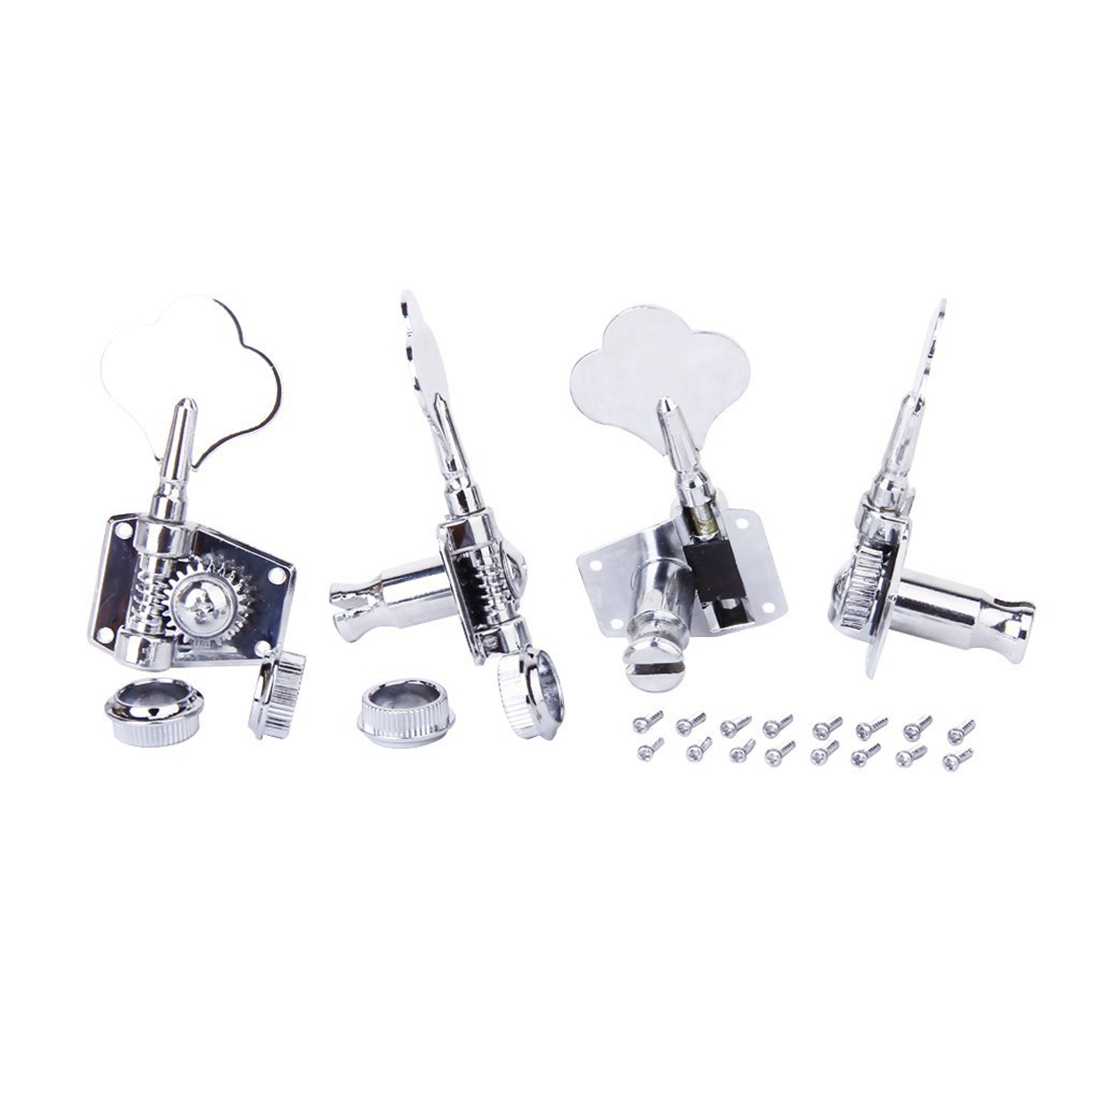 SEWS 4 PCS String Tuning Pegs Machine Heads for Electric Bass 4R kaish set of 4 left handed sealed bass tuners tuning keys pegs 4 string bass machine heads 2 colors